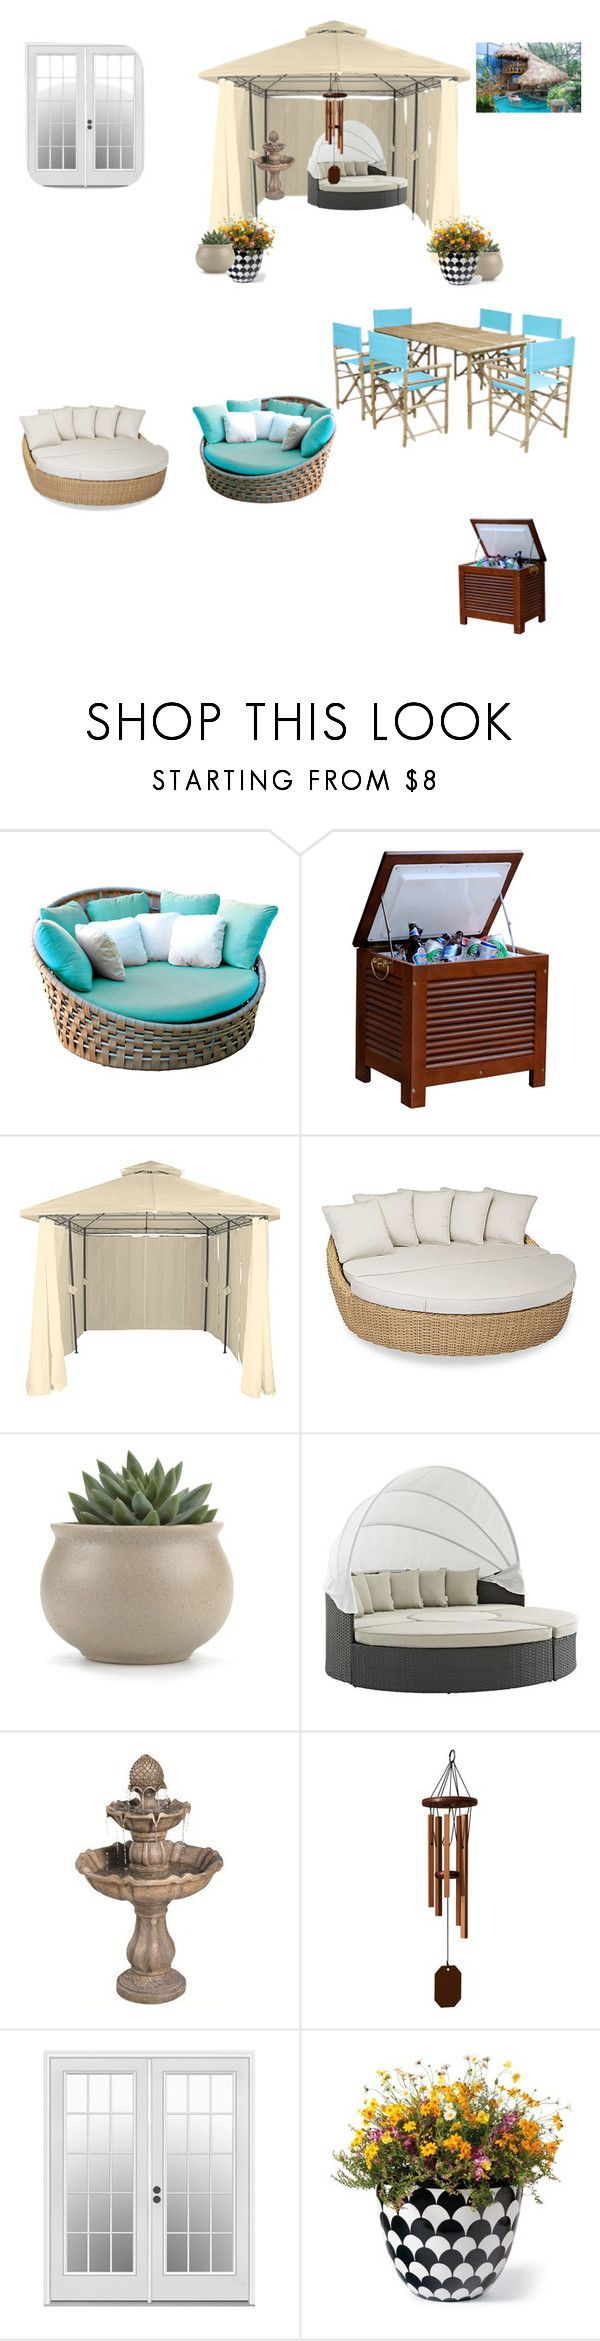 """""""Outdoor"""" by heythatsagirl43 ❤ liked on Polyvore featuring interior, interiors, interior design, home, home decor, interior decorating, Skyline, Sunset West, Sunbrella and DutchCrafters"""